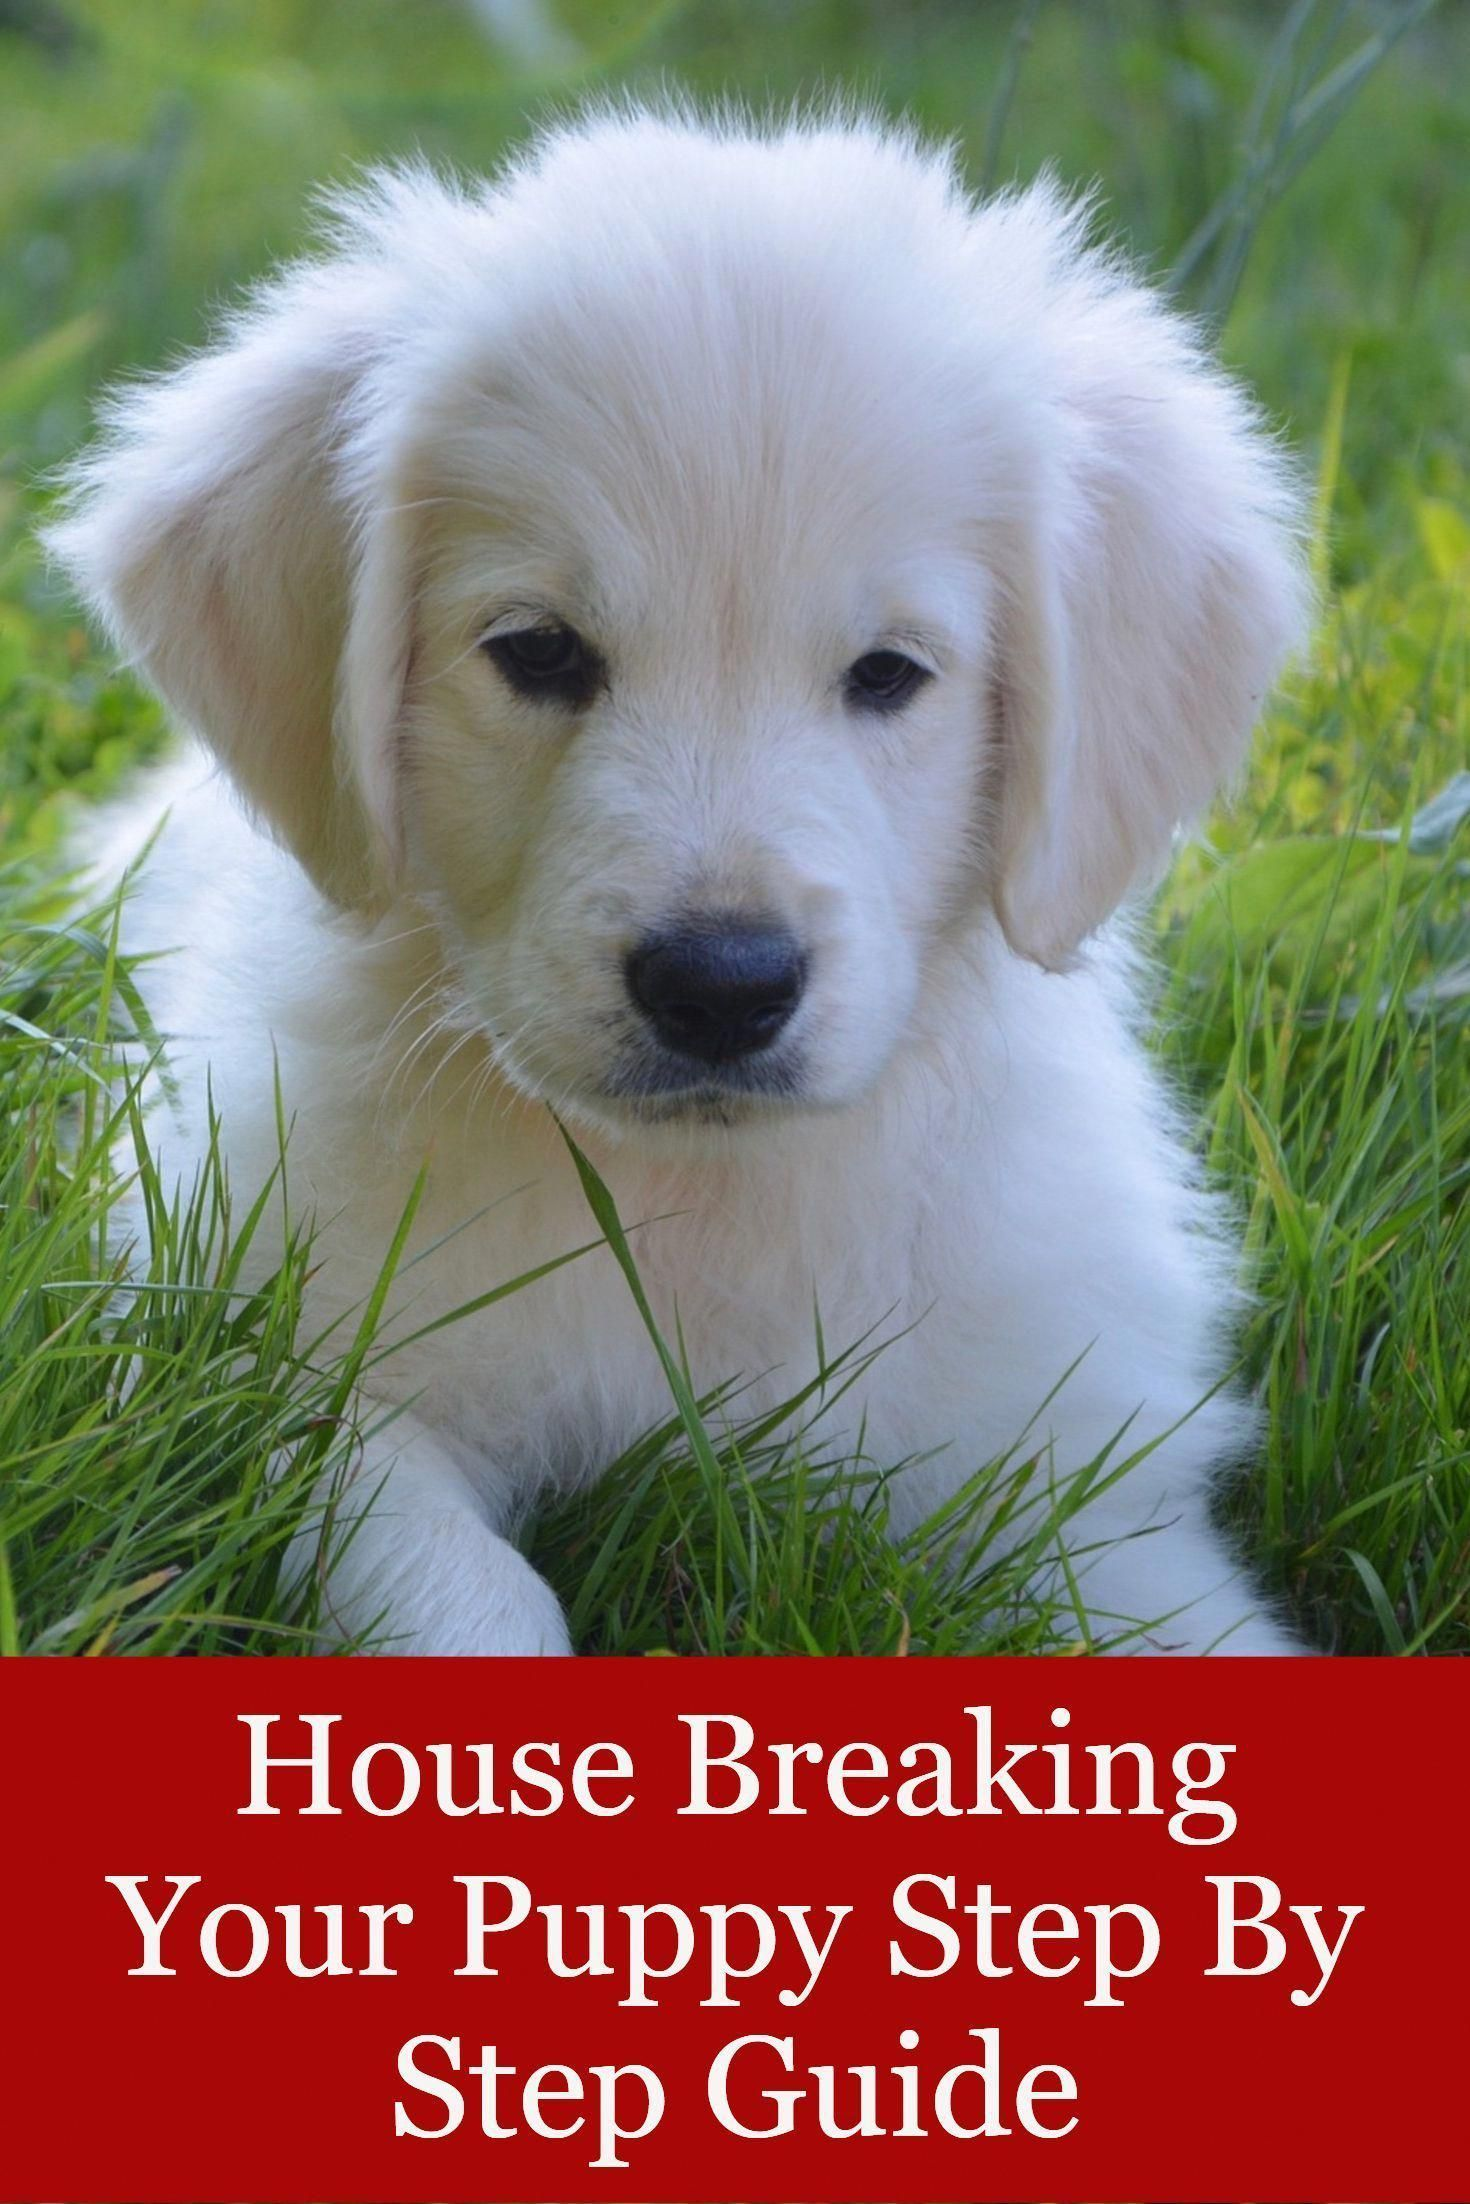 House Breaking Your Puppy Step By Step Guide Dog Training